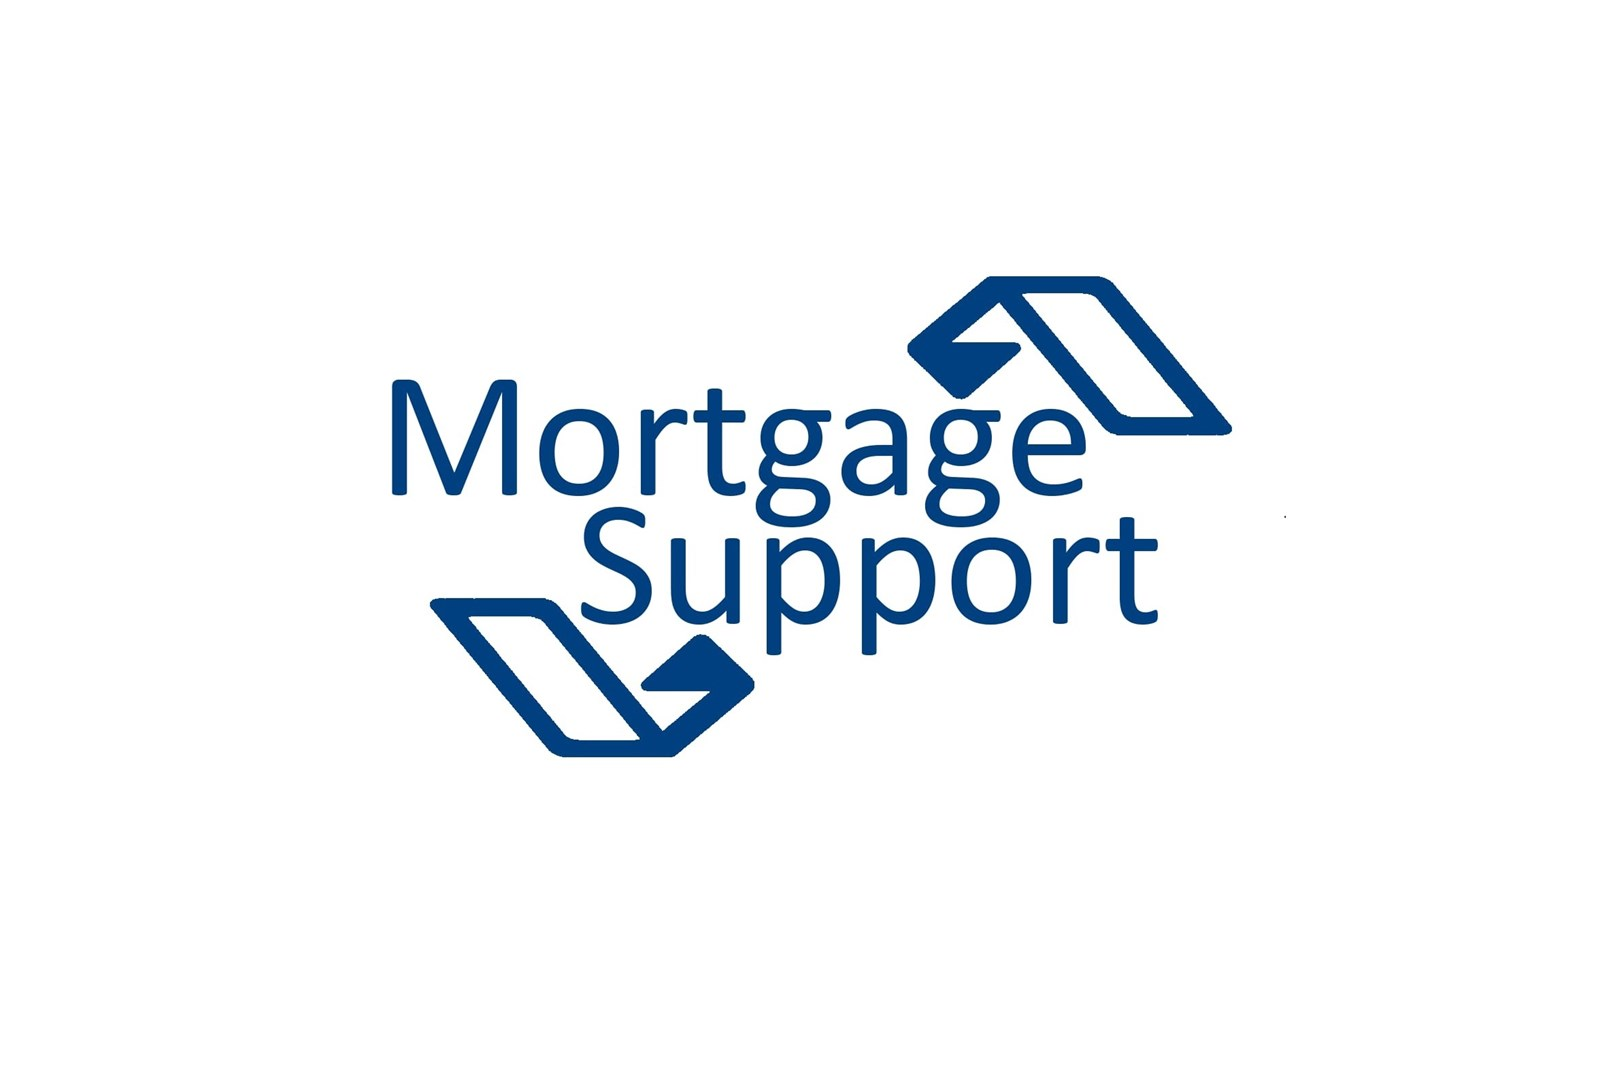 MortgageSupport